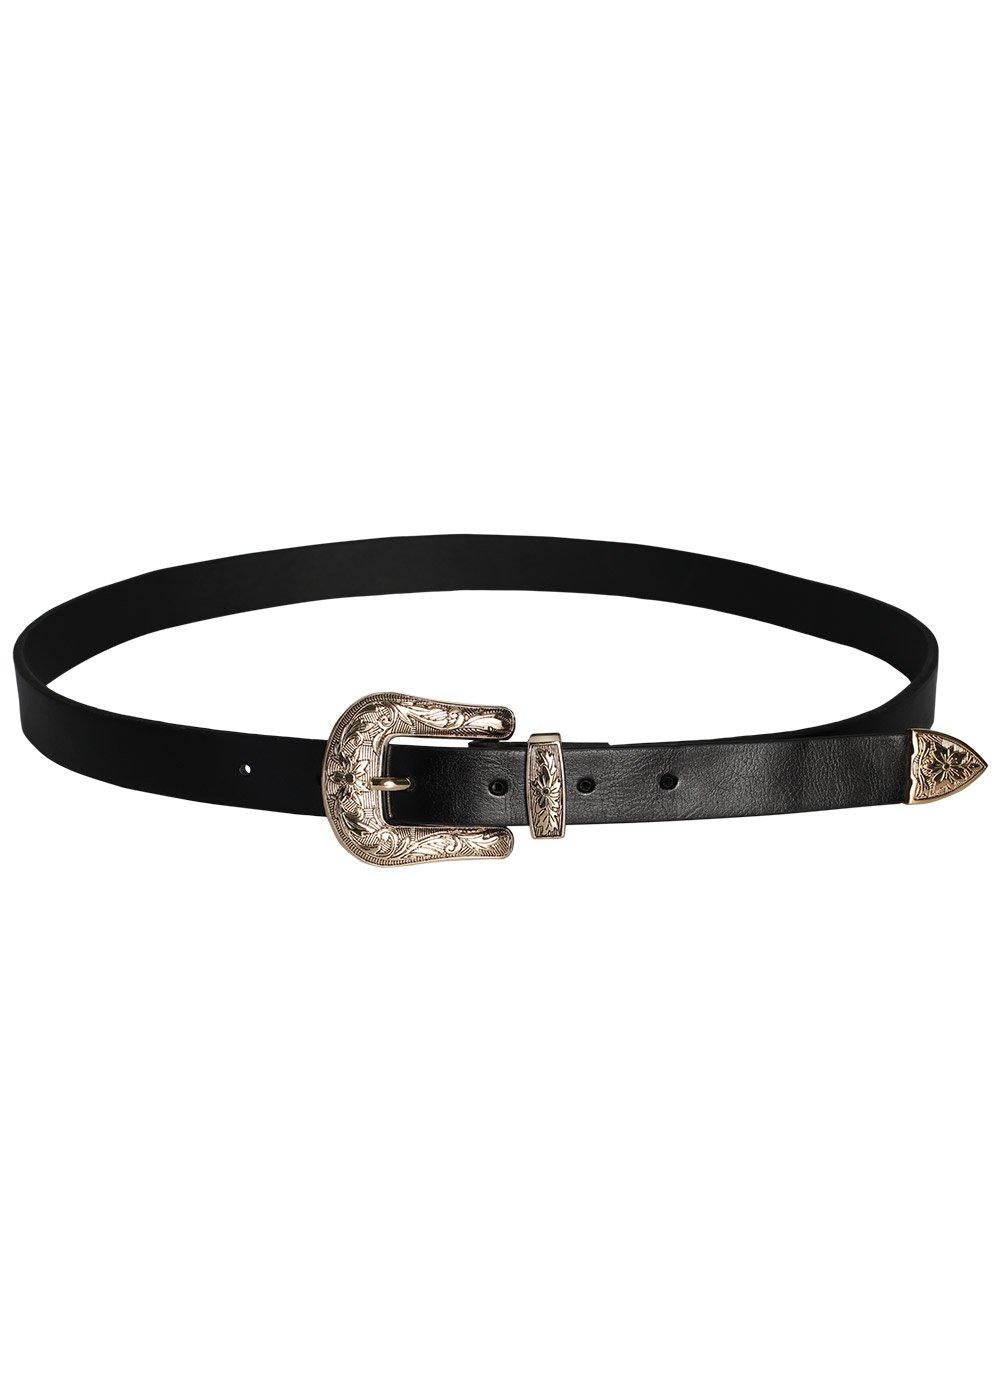 Wink Gal Women Double Buckle Belt 10417 - WinkGalB2B